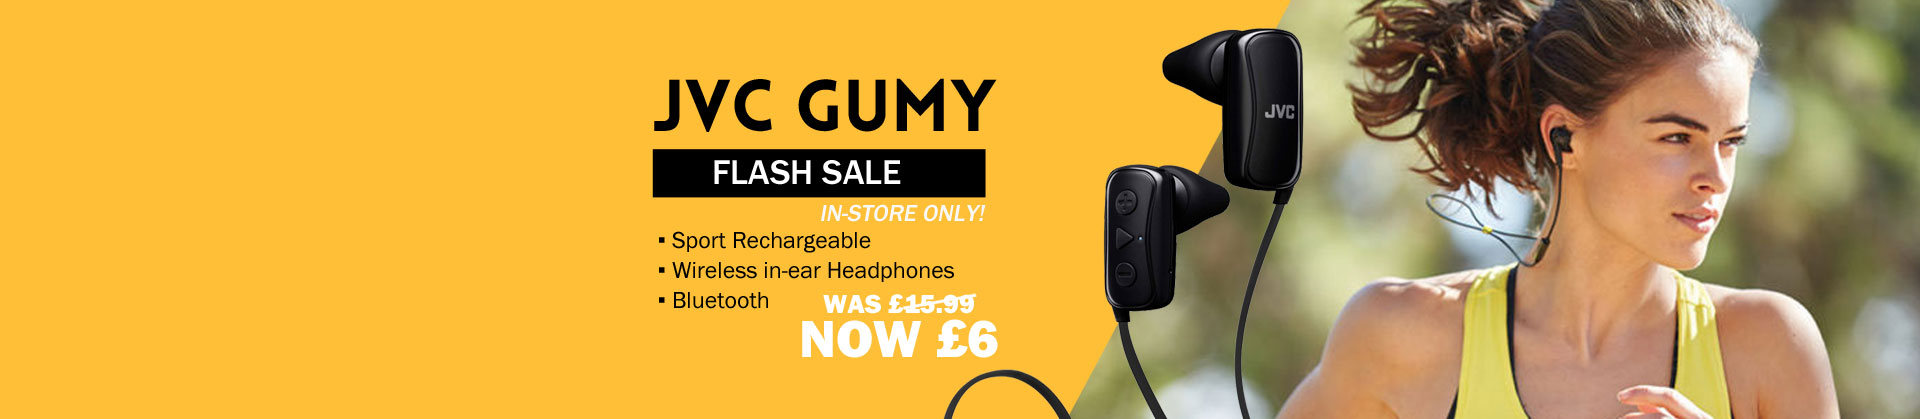 JVC Gumy Sport Rechargeable wireless in-ear Headphones now only £6